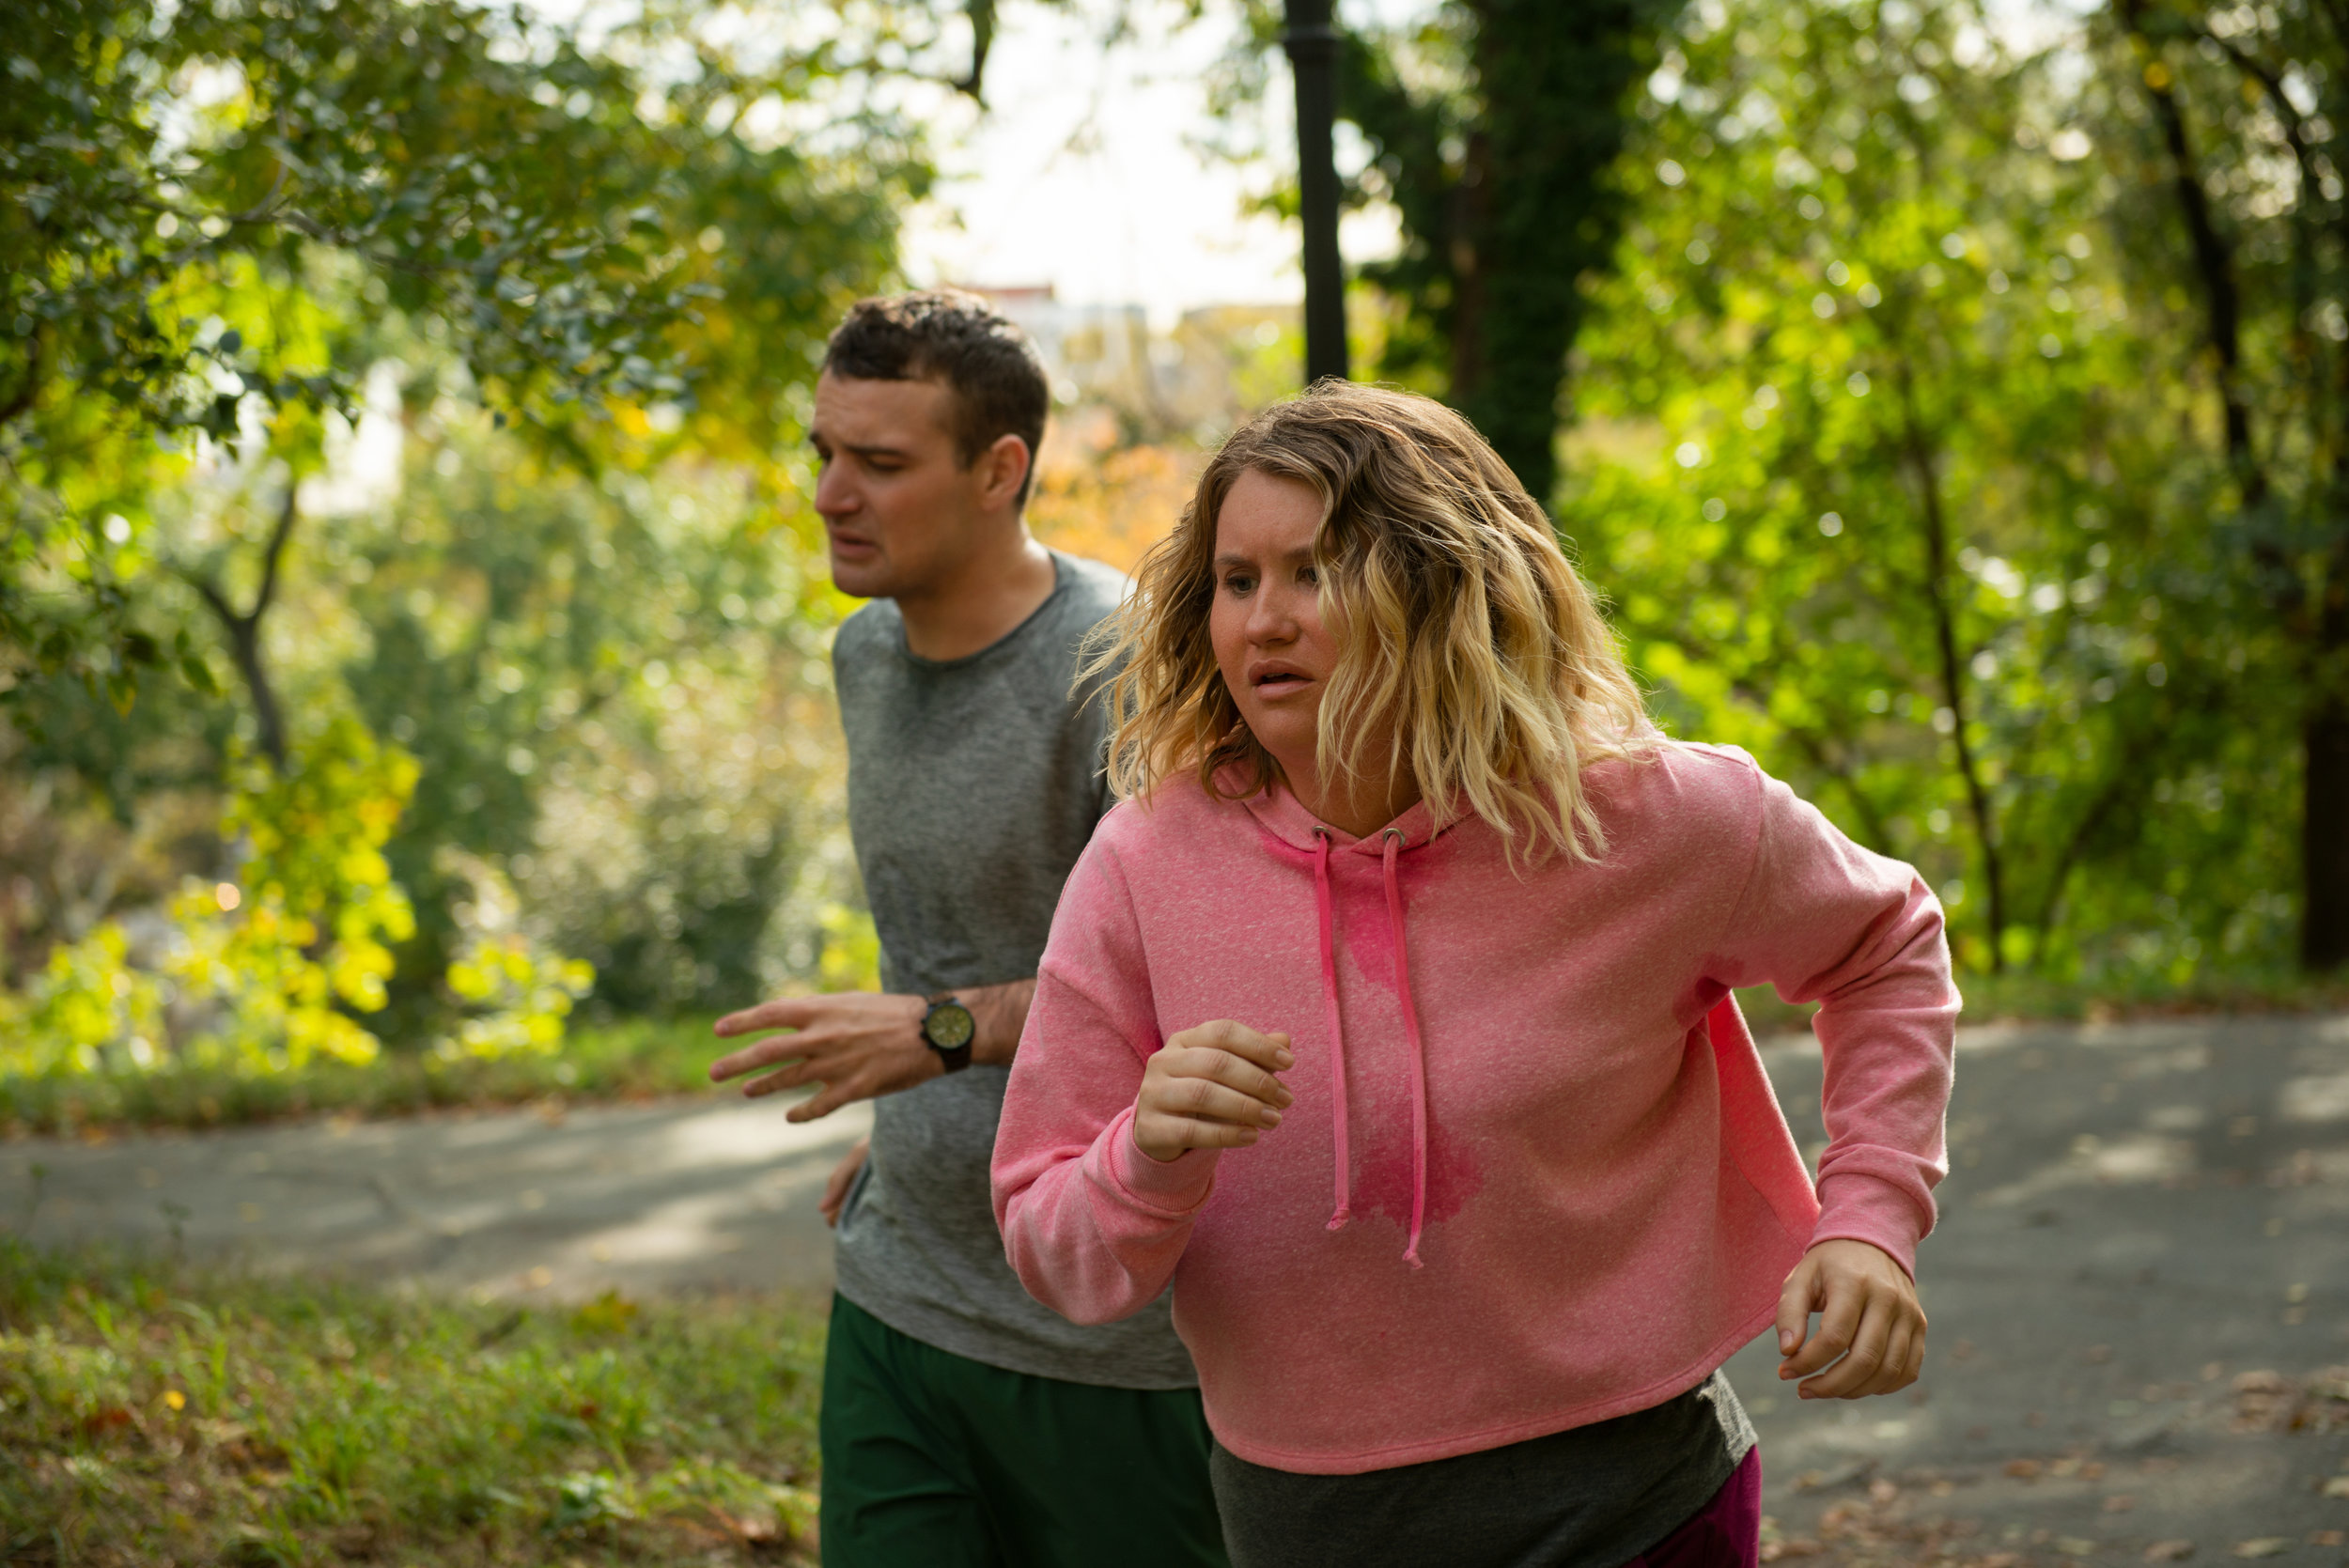 """Brittany (Jillian Bell, right) and her new running partner, Seth (Micah Stock), suffer through their first run, in a scene from the comedy """"Brittany Runs a Marathon."""" (Photo by Anna Kooris, courtesy of Amazon Studios.)"""